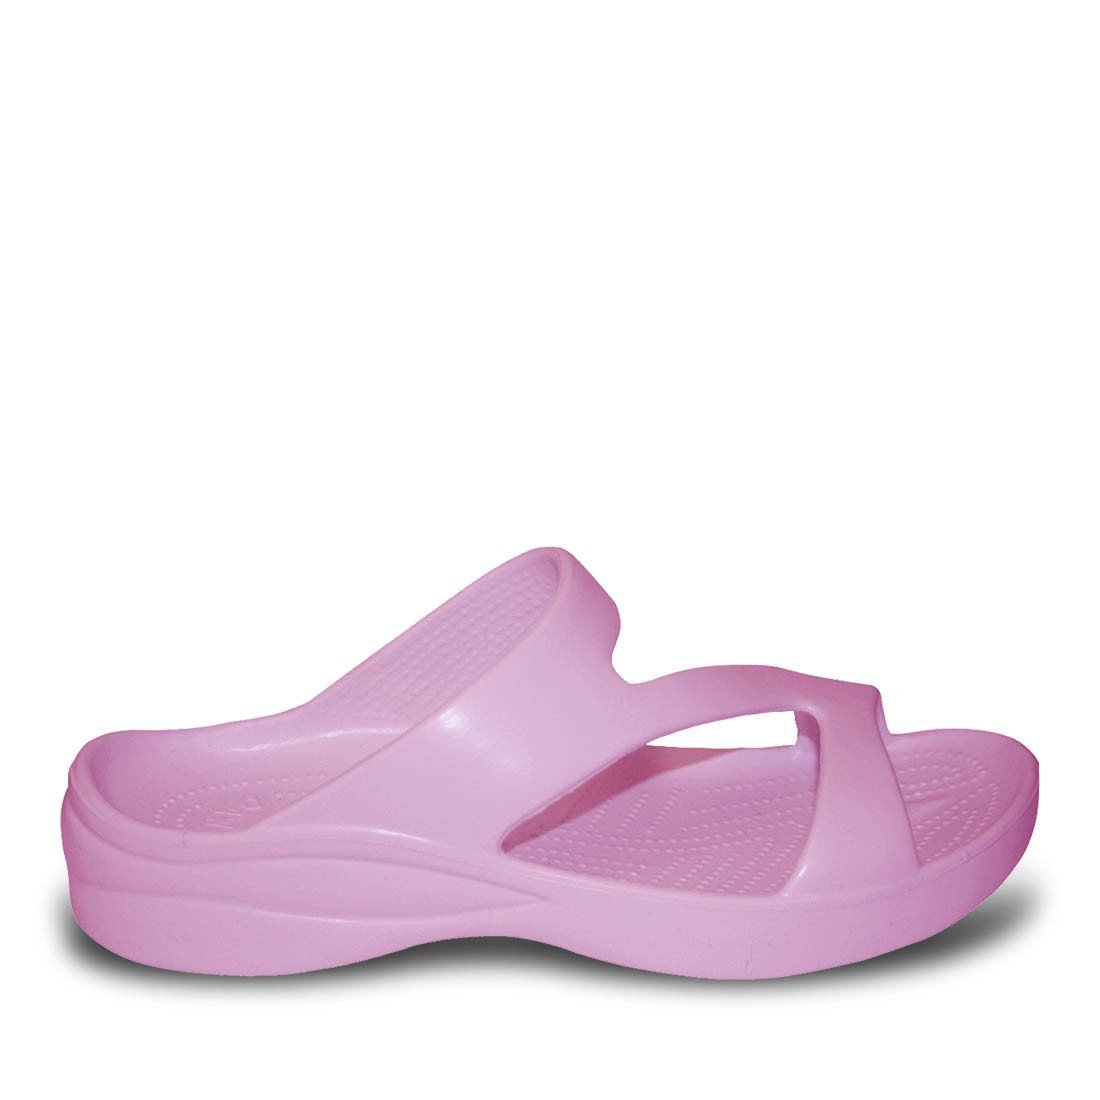 Image of Women's Z Sandals - Lilac